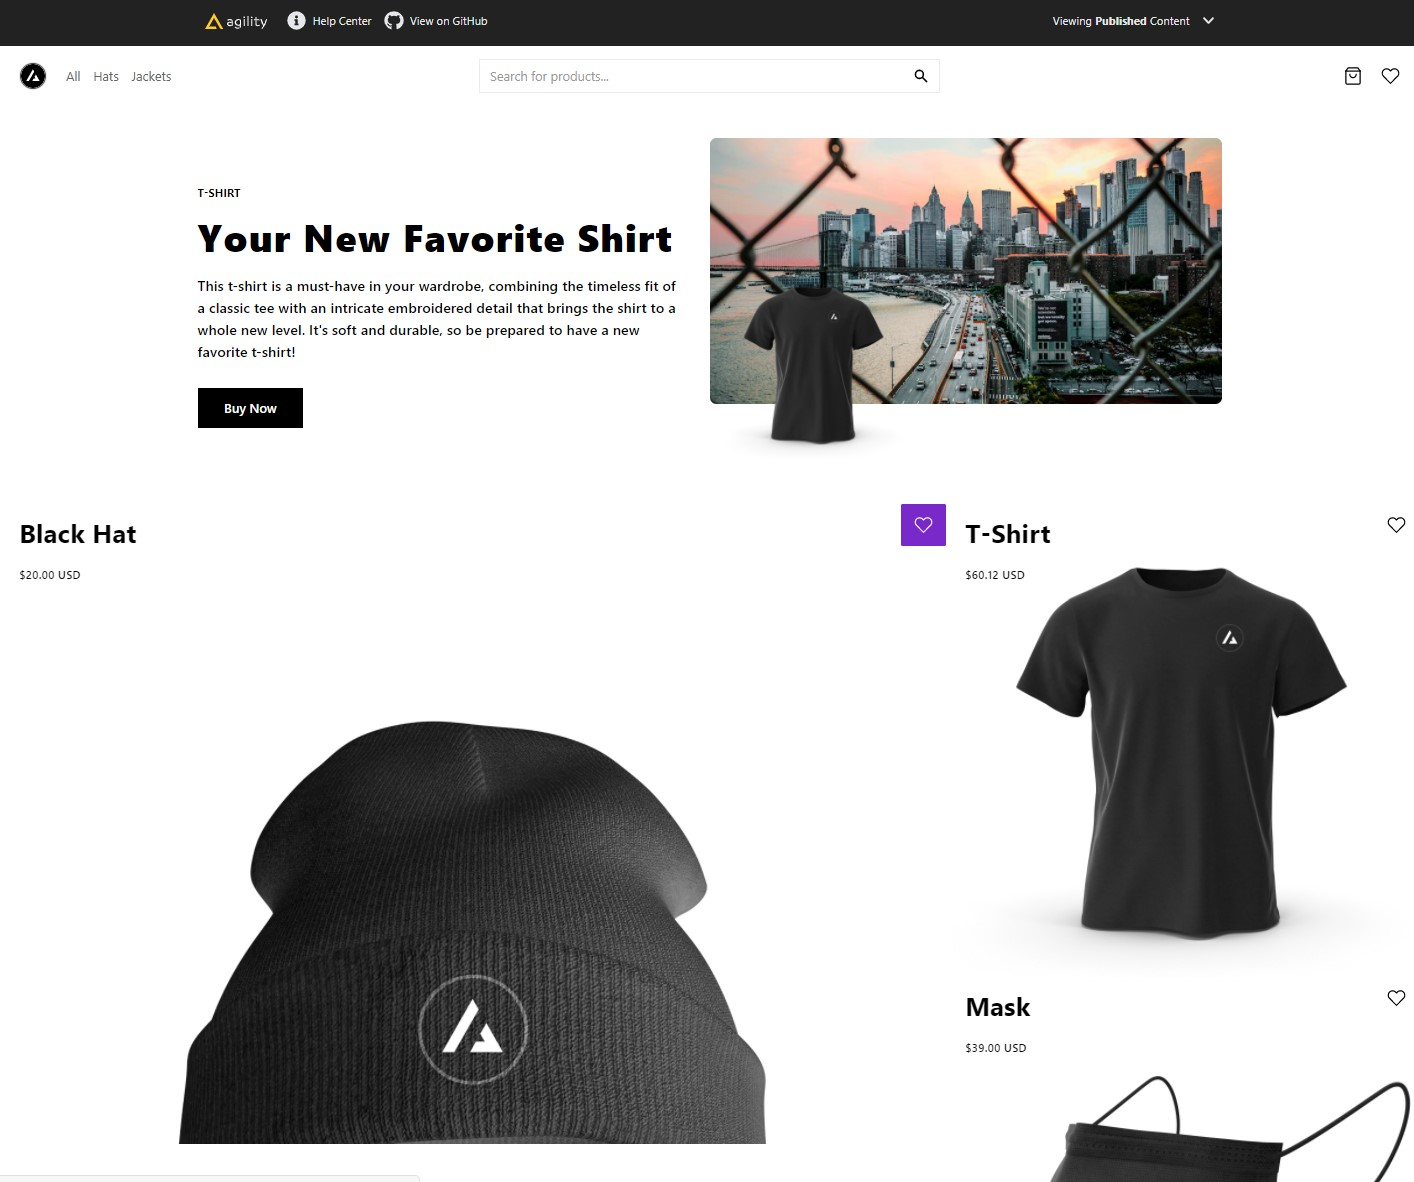 Commerce with Next.js With just a few clicks, Next.js developers can clone, deploy, and fully customize their own store, managed with Agility CMS.